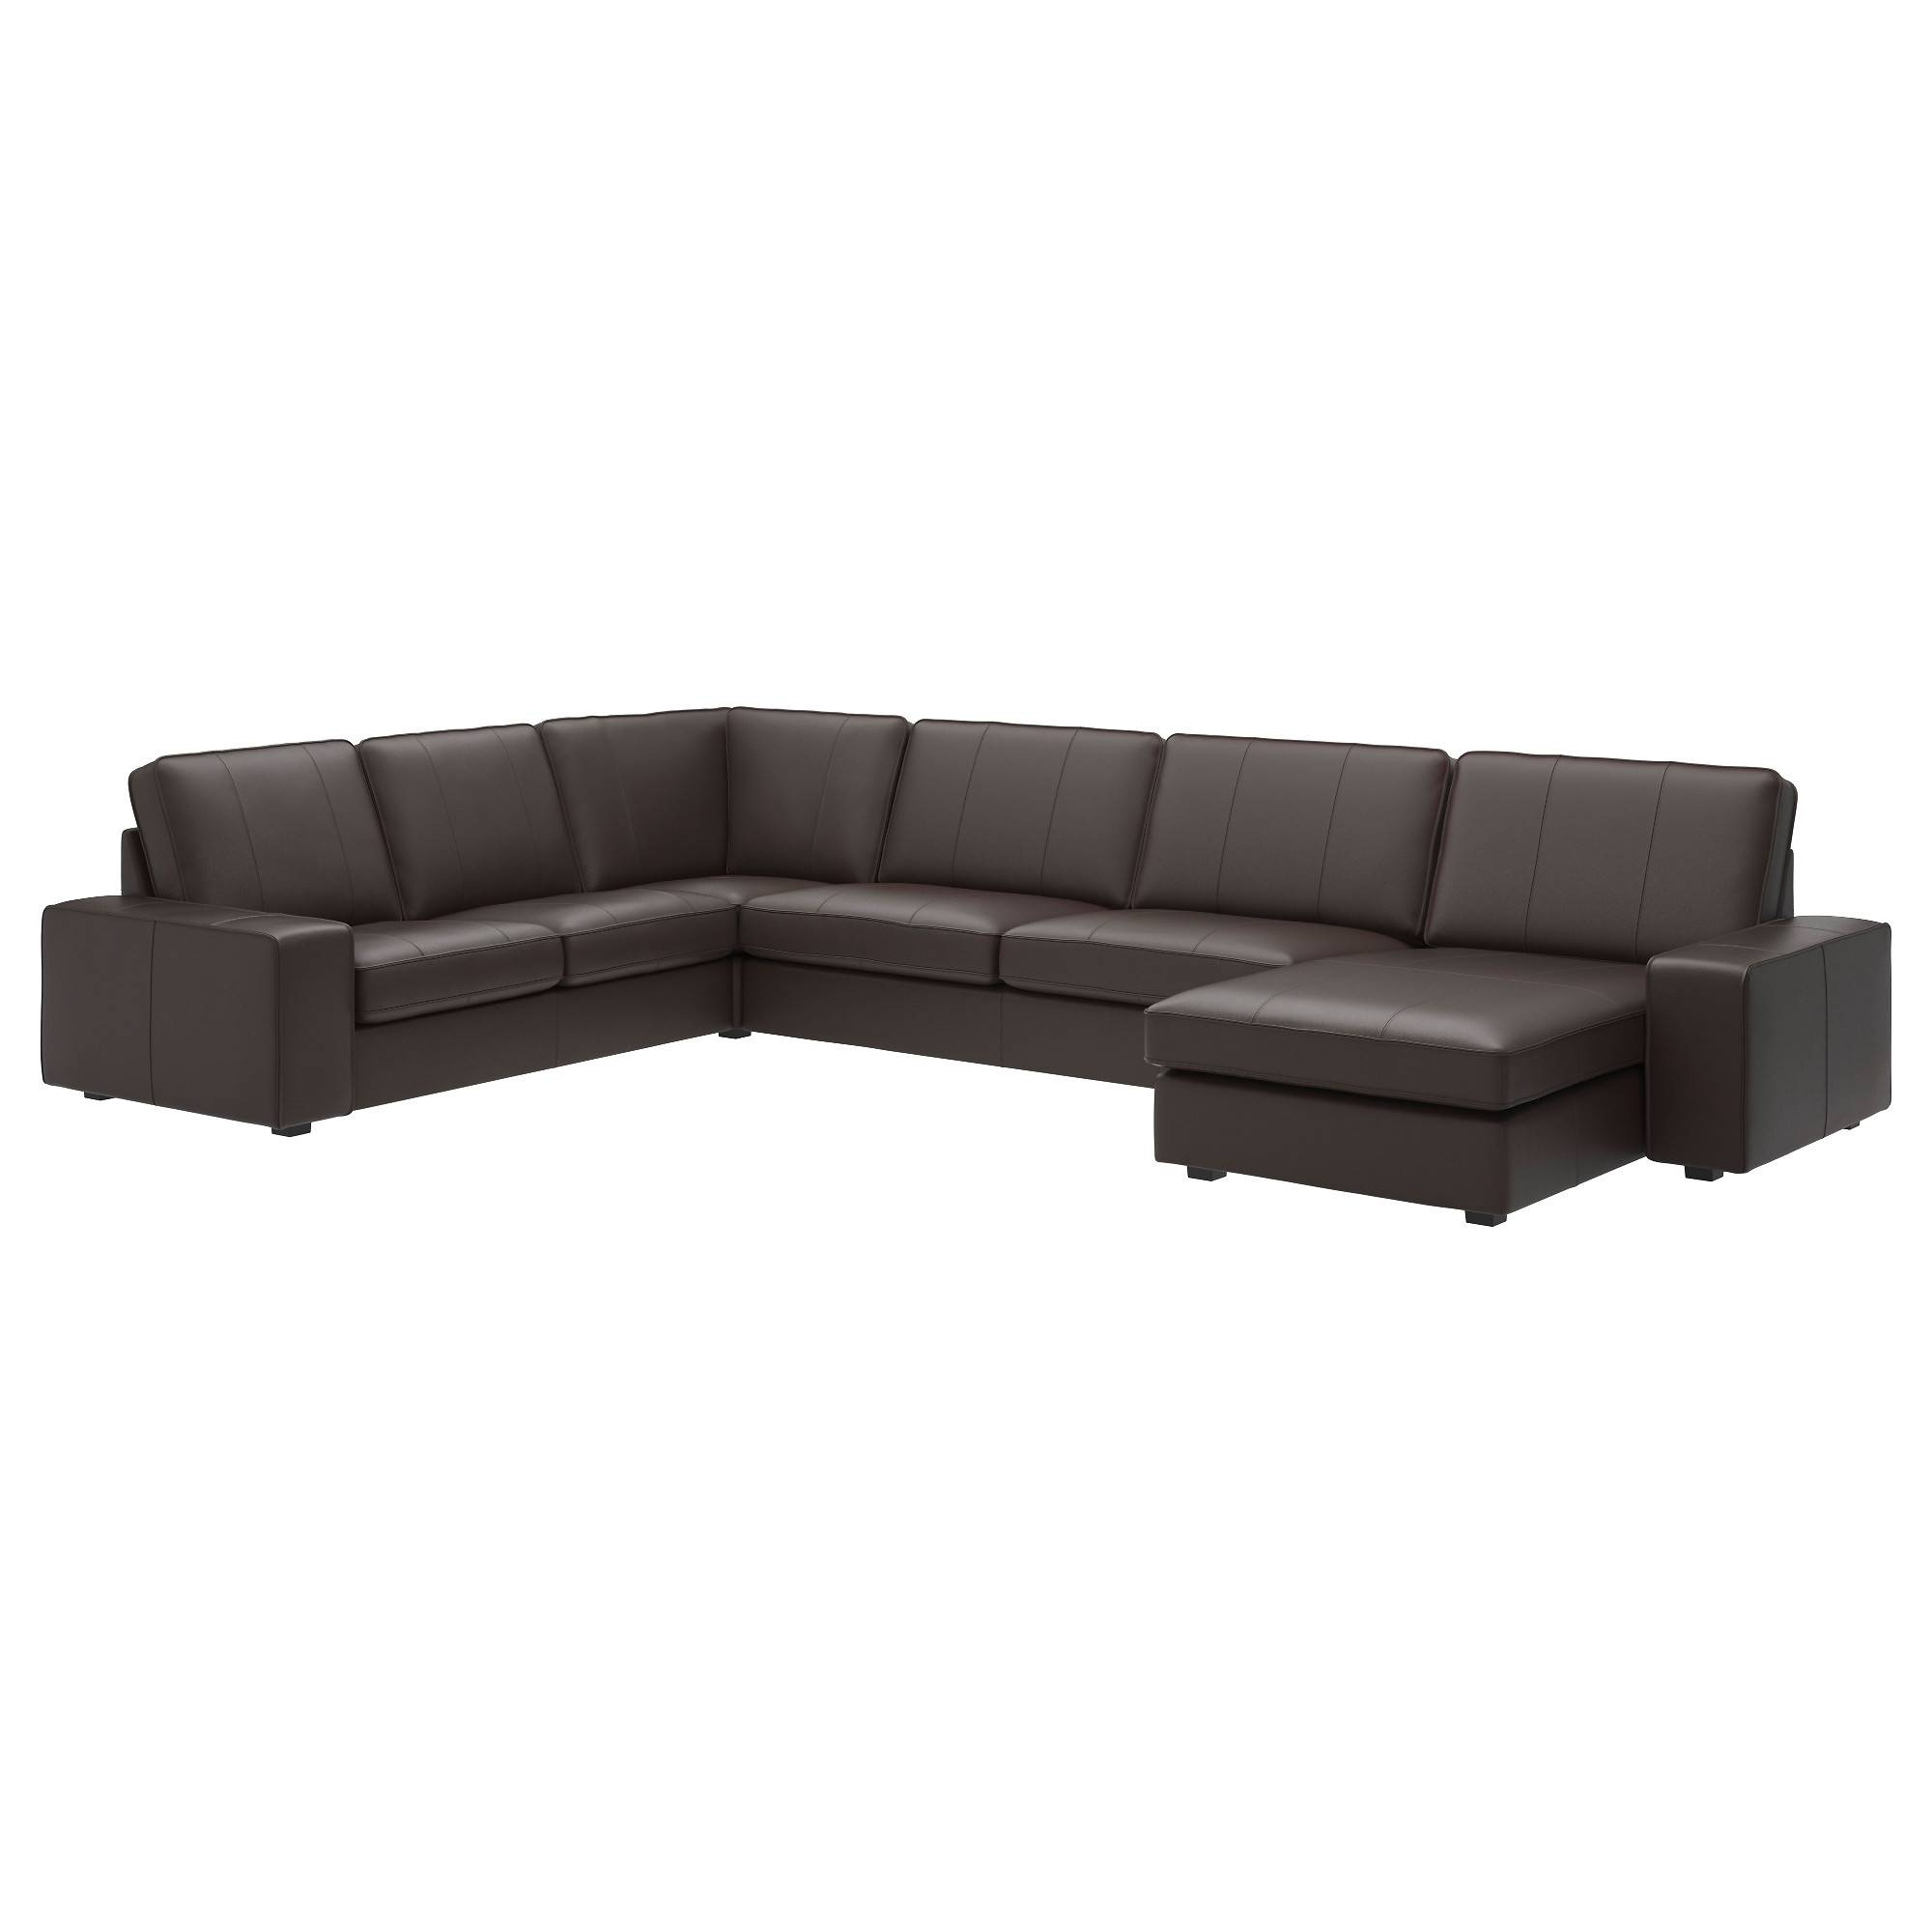 Leather & Faux Leather Couches, Chairs & Ottomans - Ikea throughout Leather Lounge Sofas (Image 13 of 30)